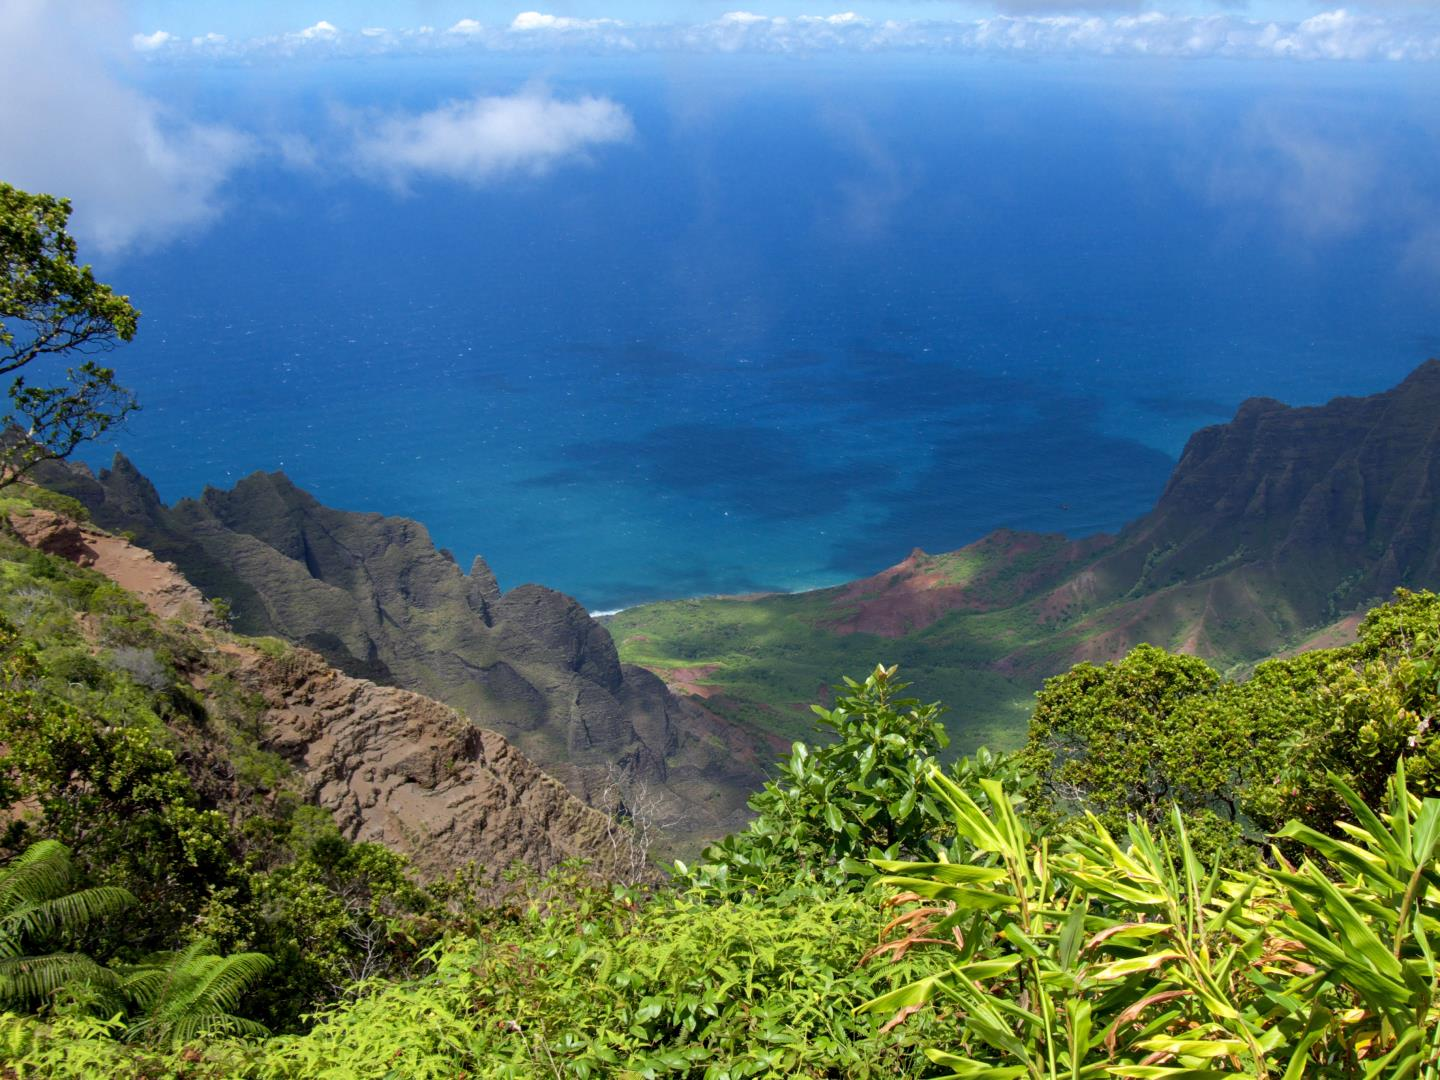 Full-Service Travel Agency Carlsbad, NM – Travel to Kauai, Hawaii